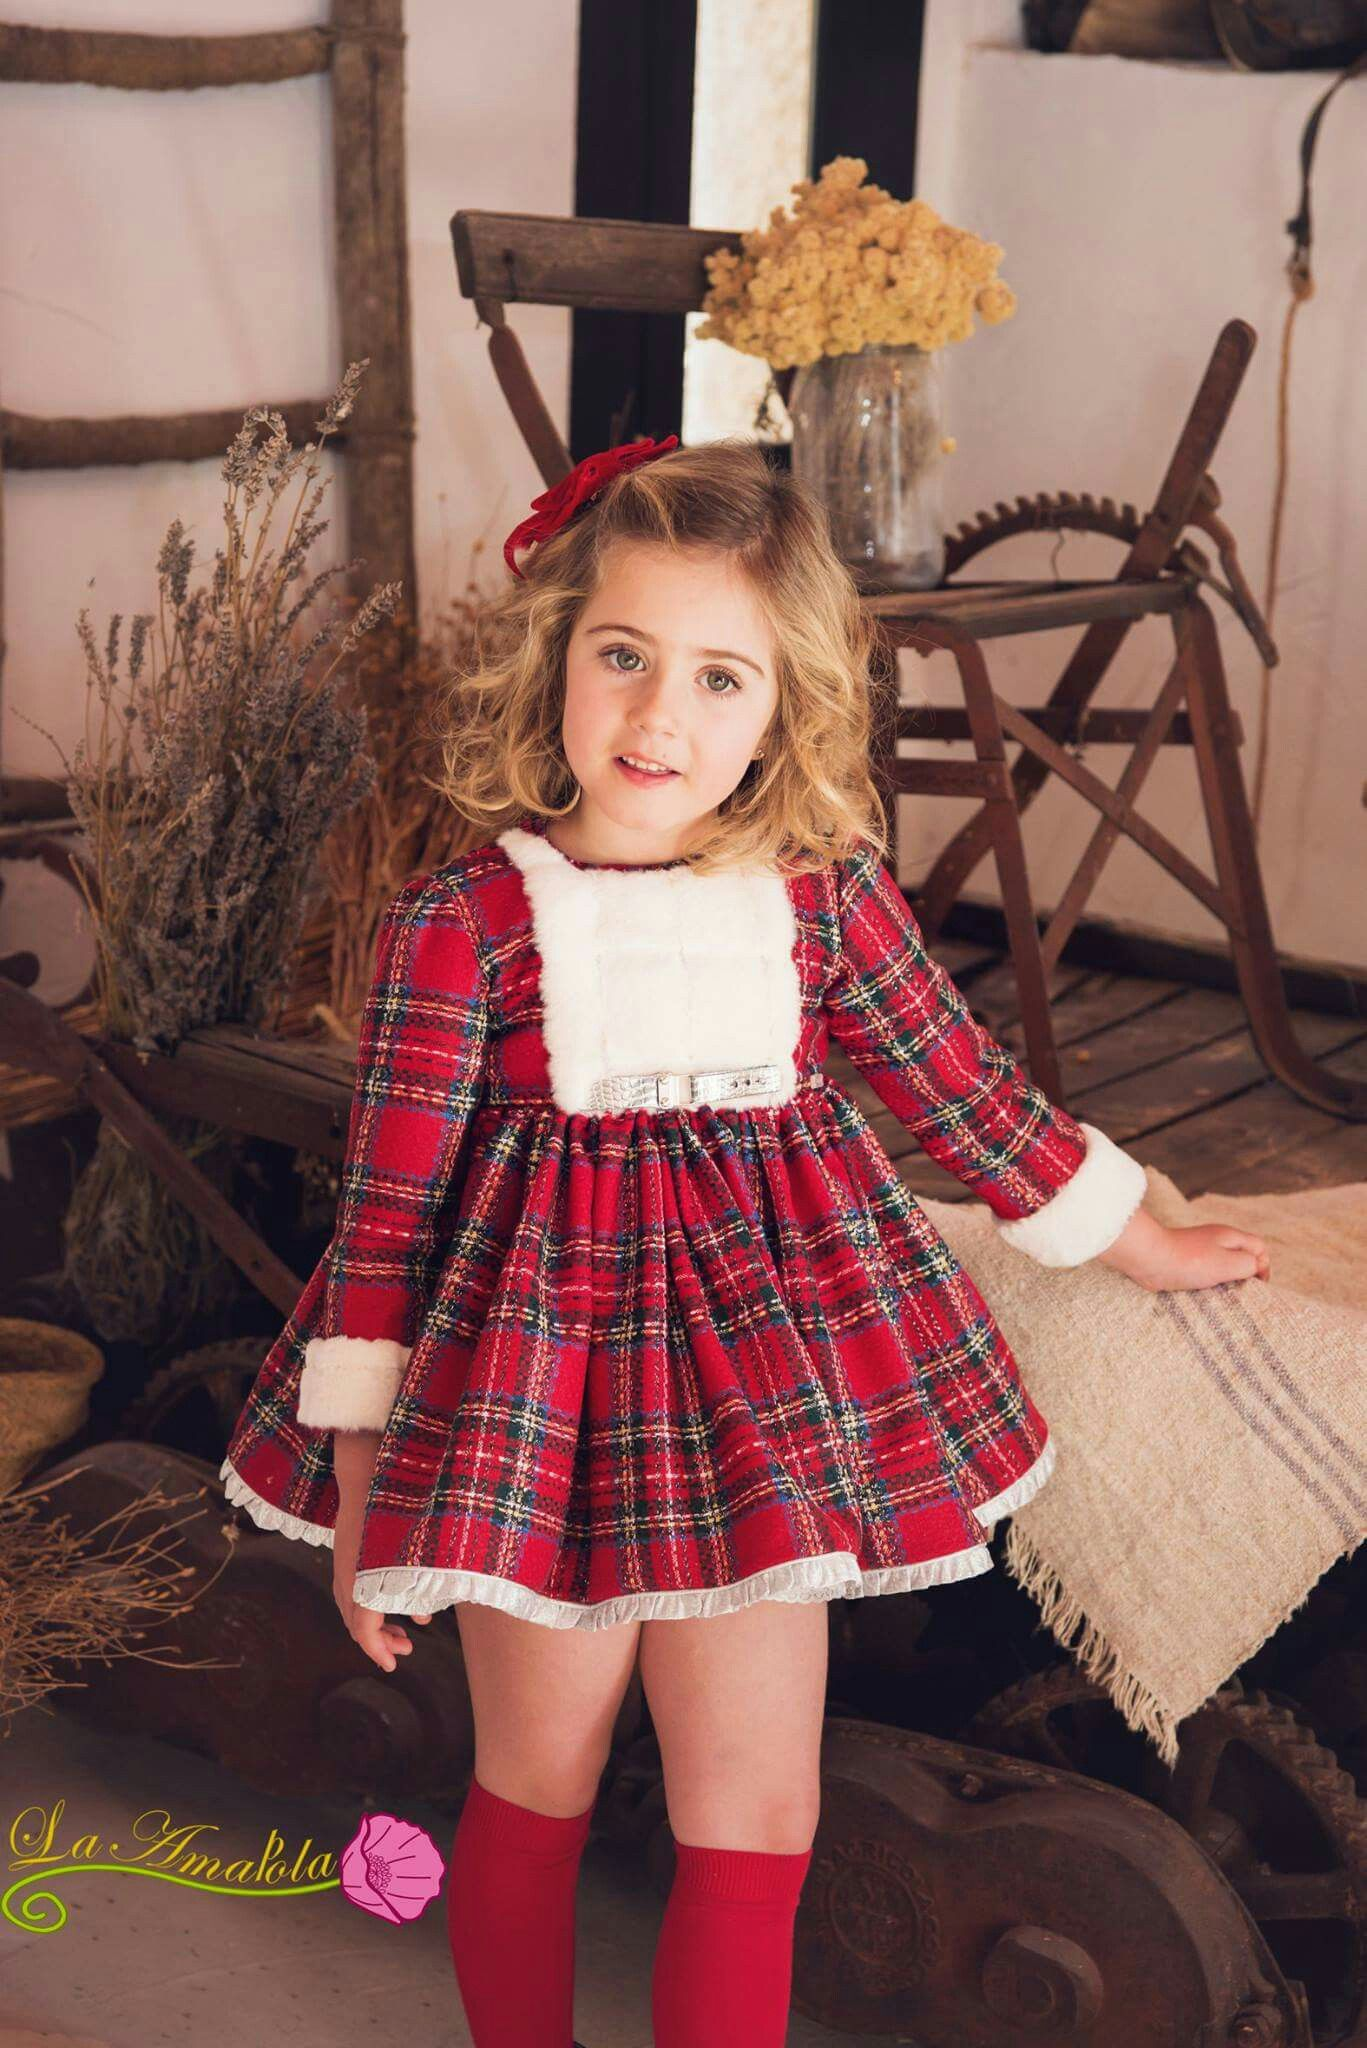 Pin By Lucille On Little Girls Clothes Dresses Kids Girl